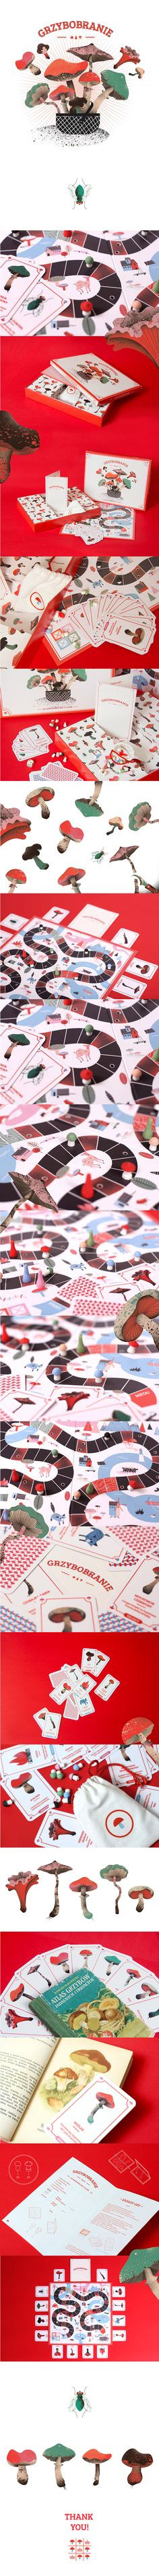 Illustration / Product design / GRZYBOBRANIE - Mushrooming Board Game on Behance